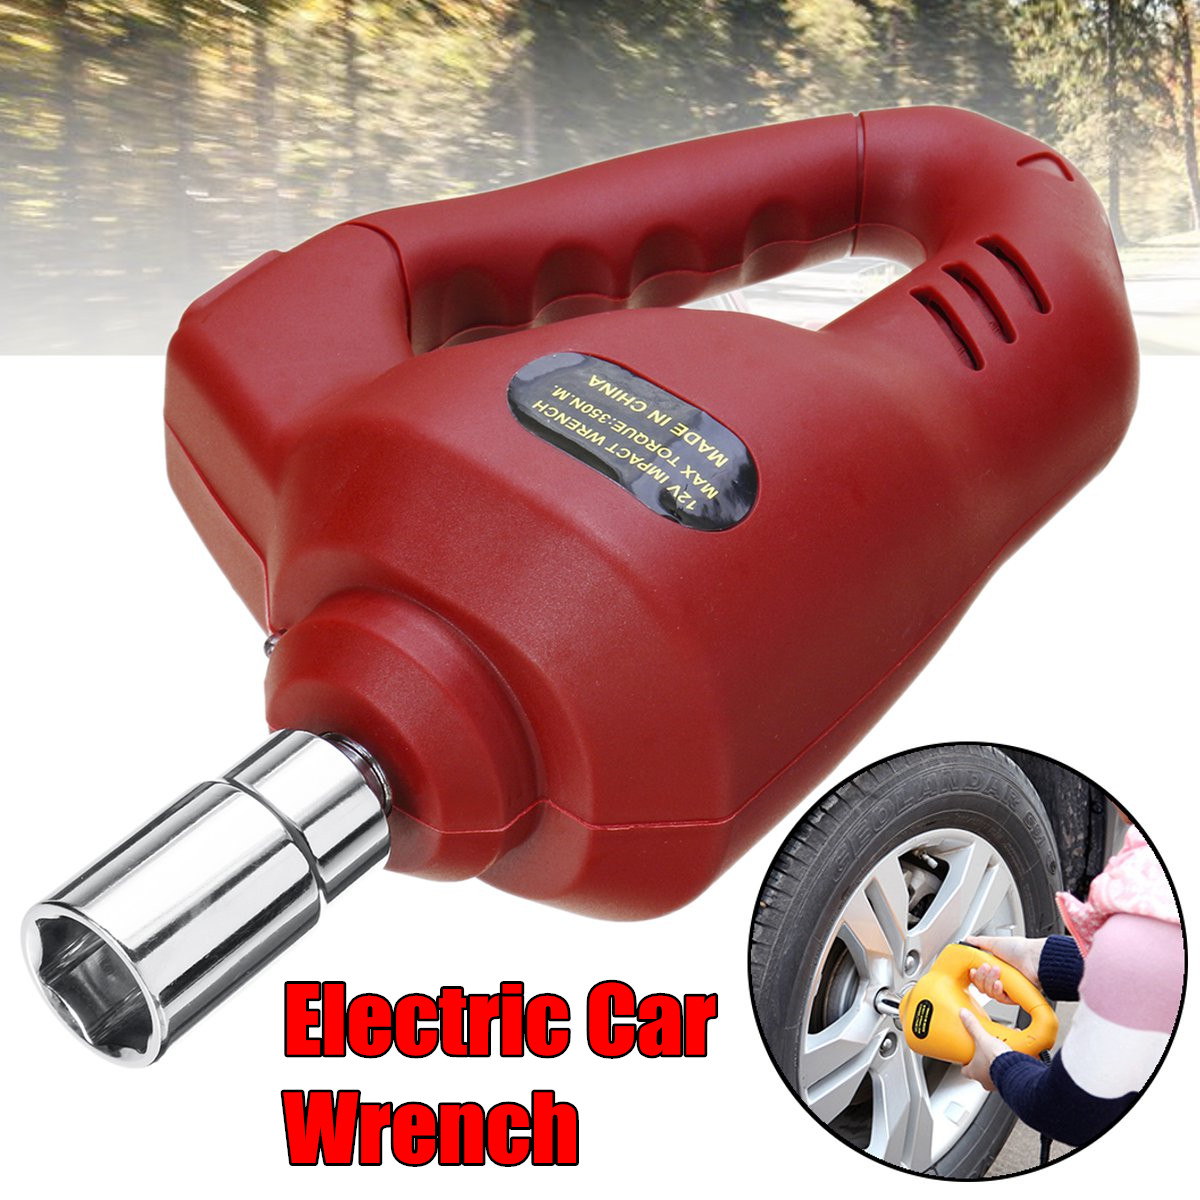 BRUniversal 12V 85W 350N.M Electric Impact Wrench car repair Electric wrench Car Socket Electric Impact Dril posenpro electric impact wrench 1 2 inch 350n m 12v car repair impact driver wrench gun kit auto tire tool